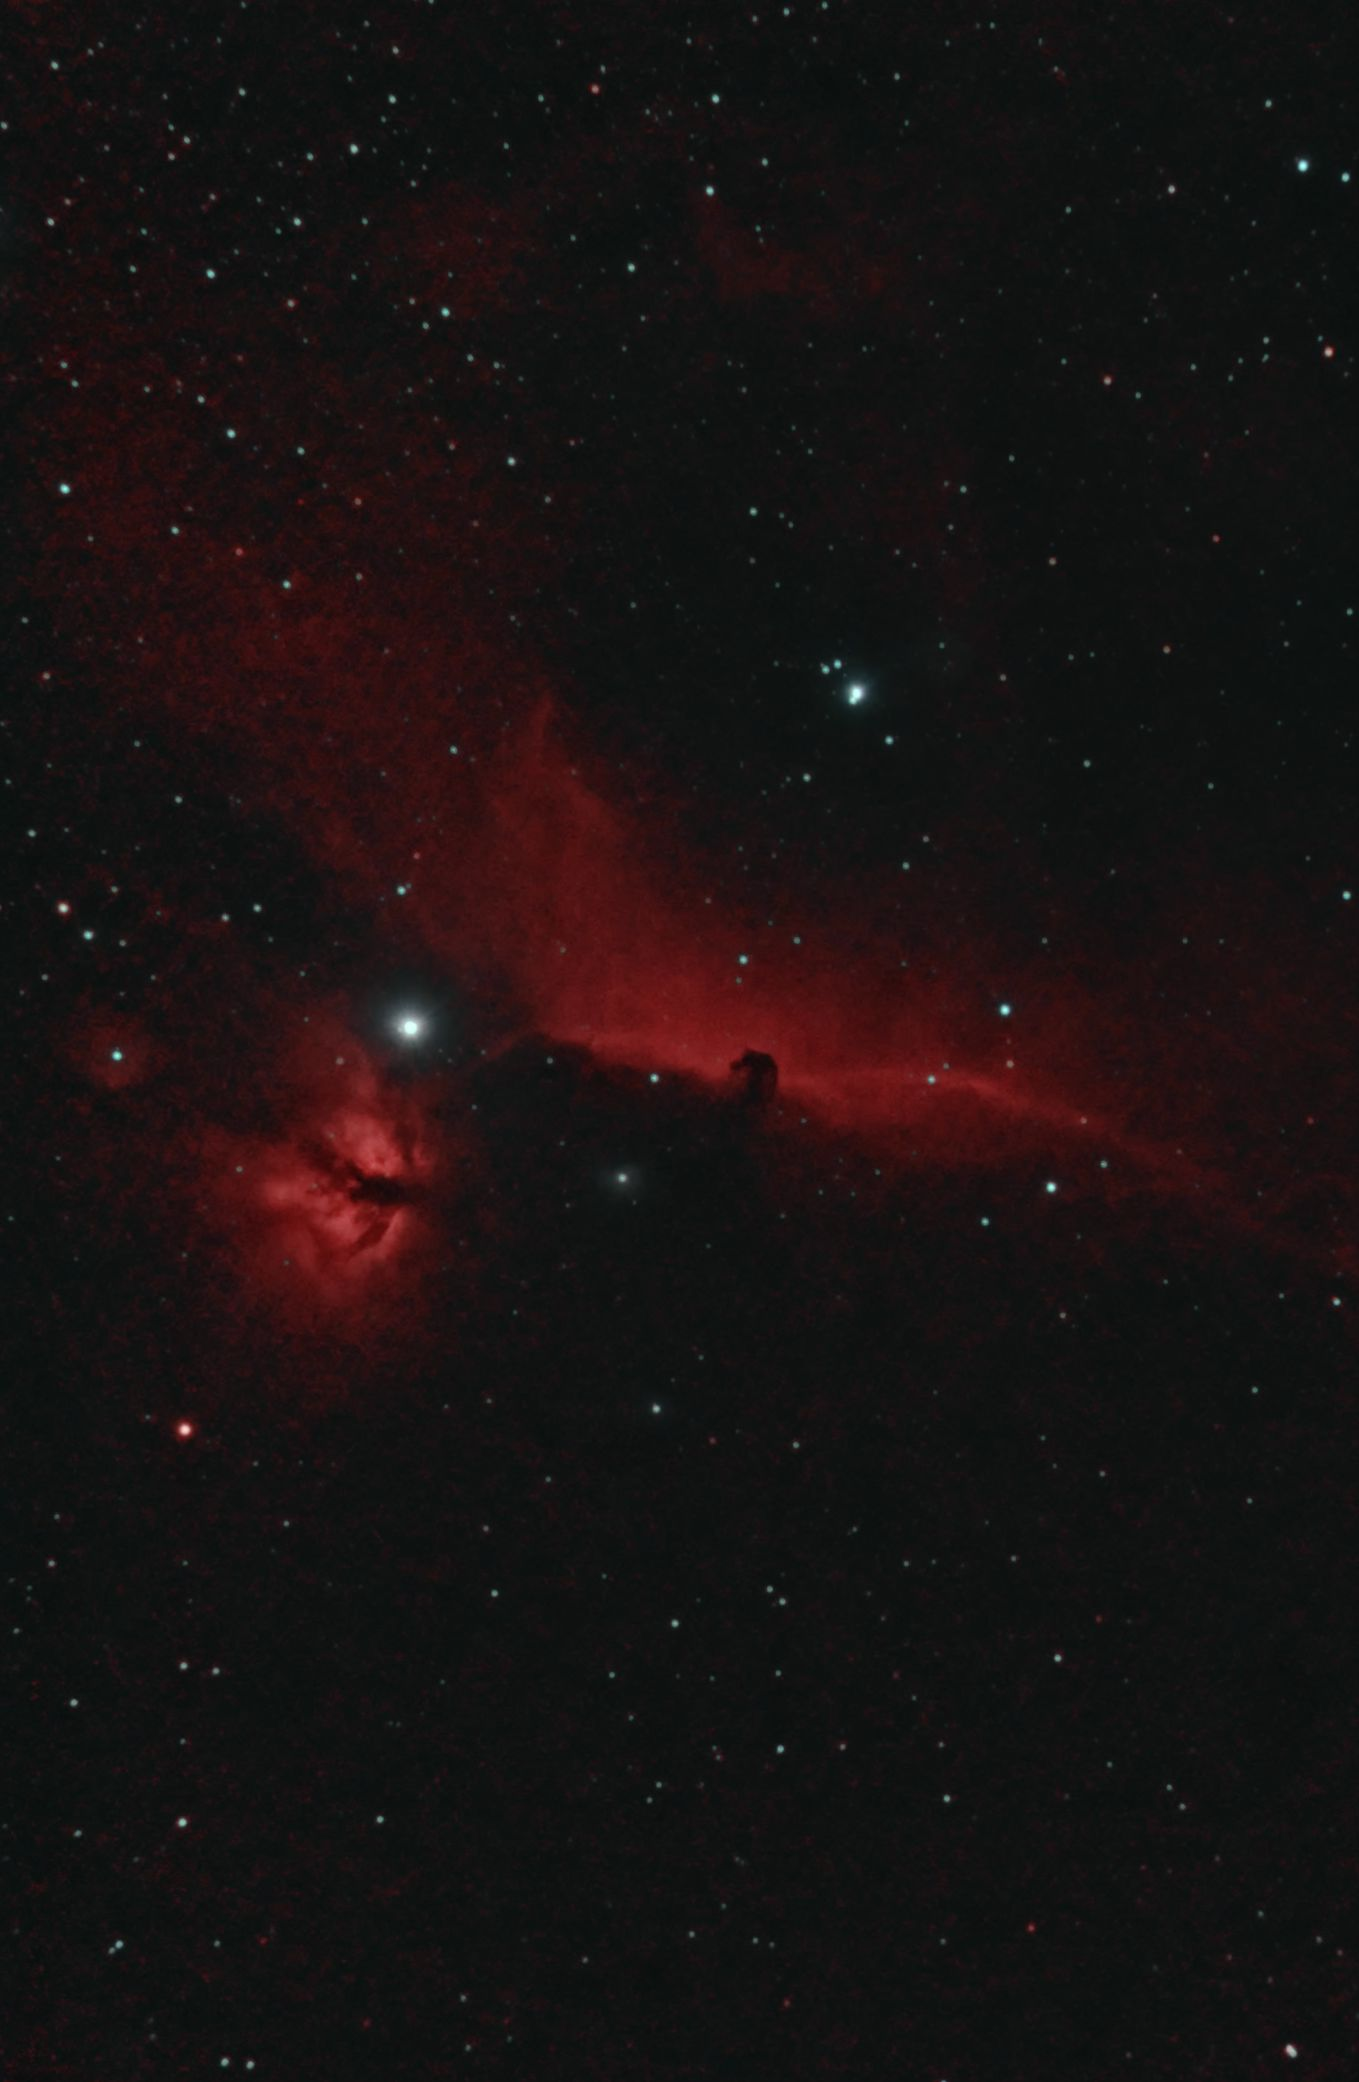 The Flame and Horsehead Nebulas near the star Alnitak in Orion